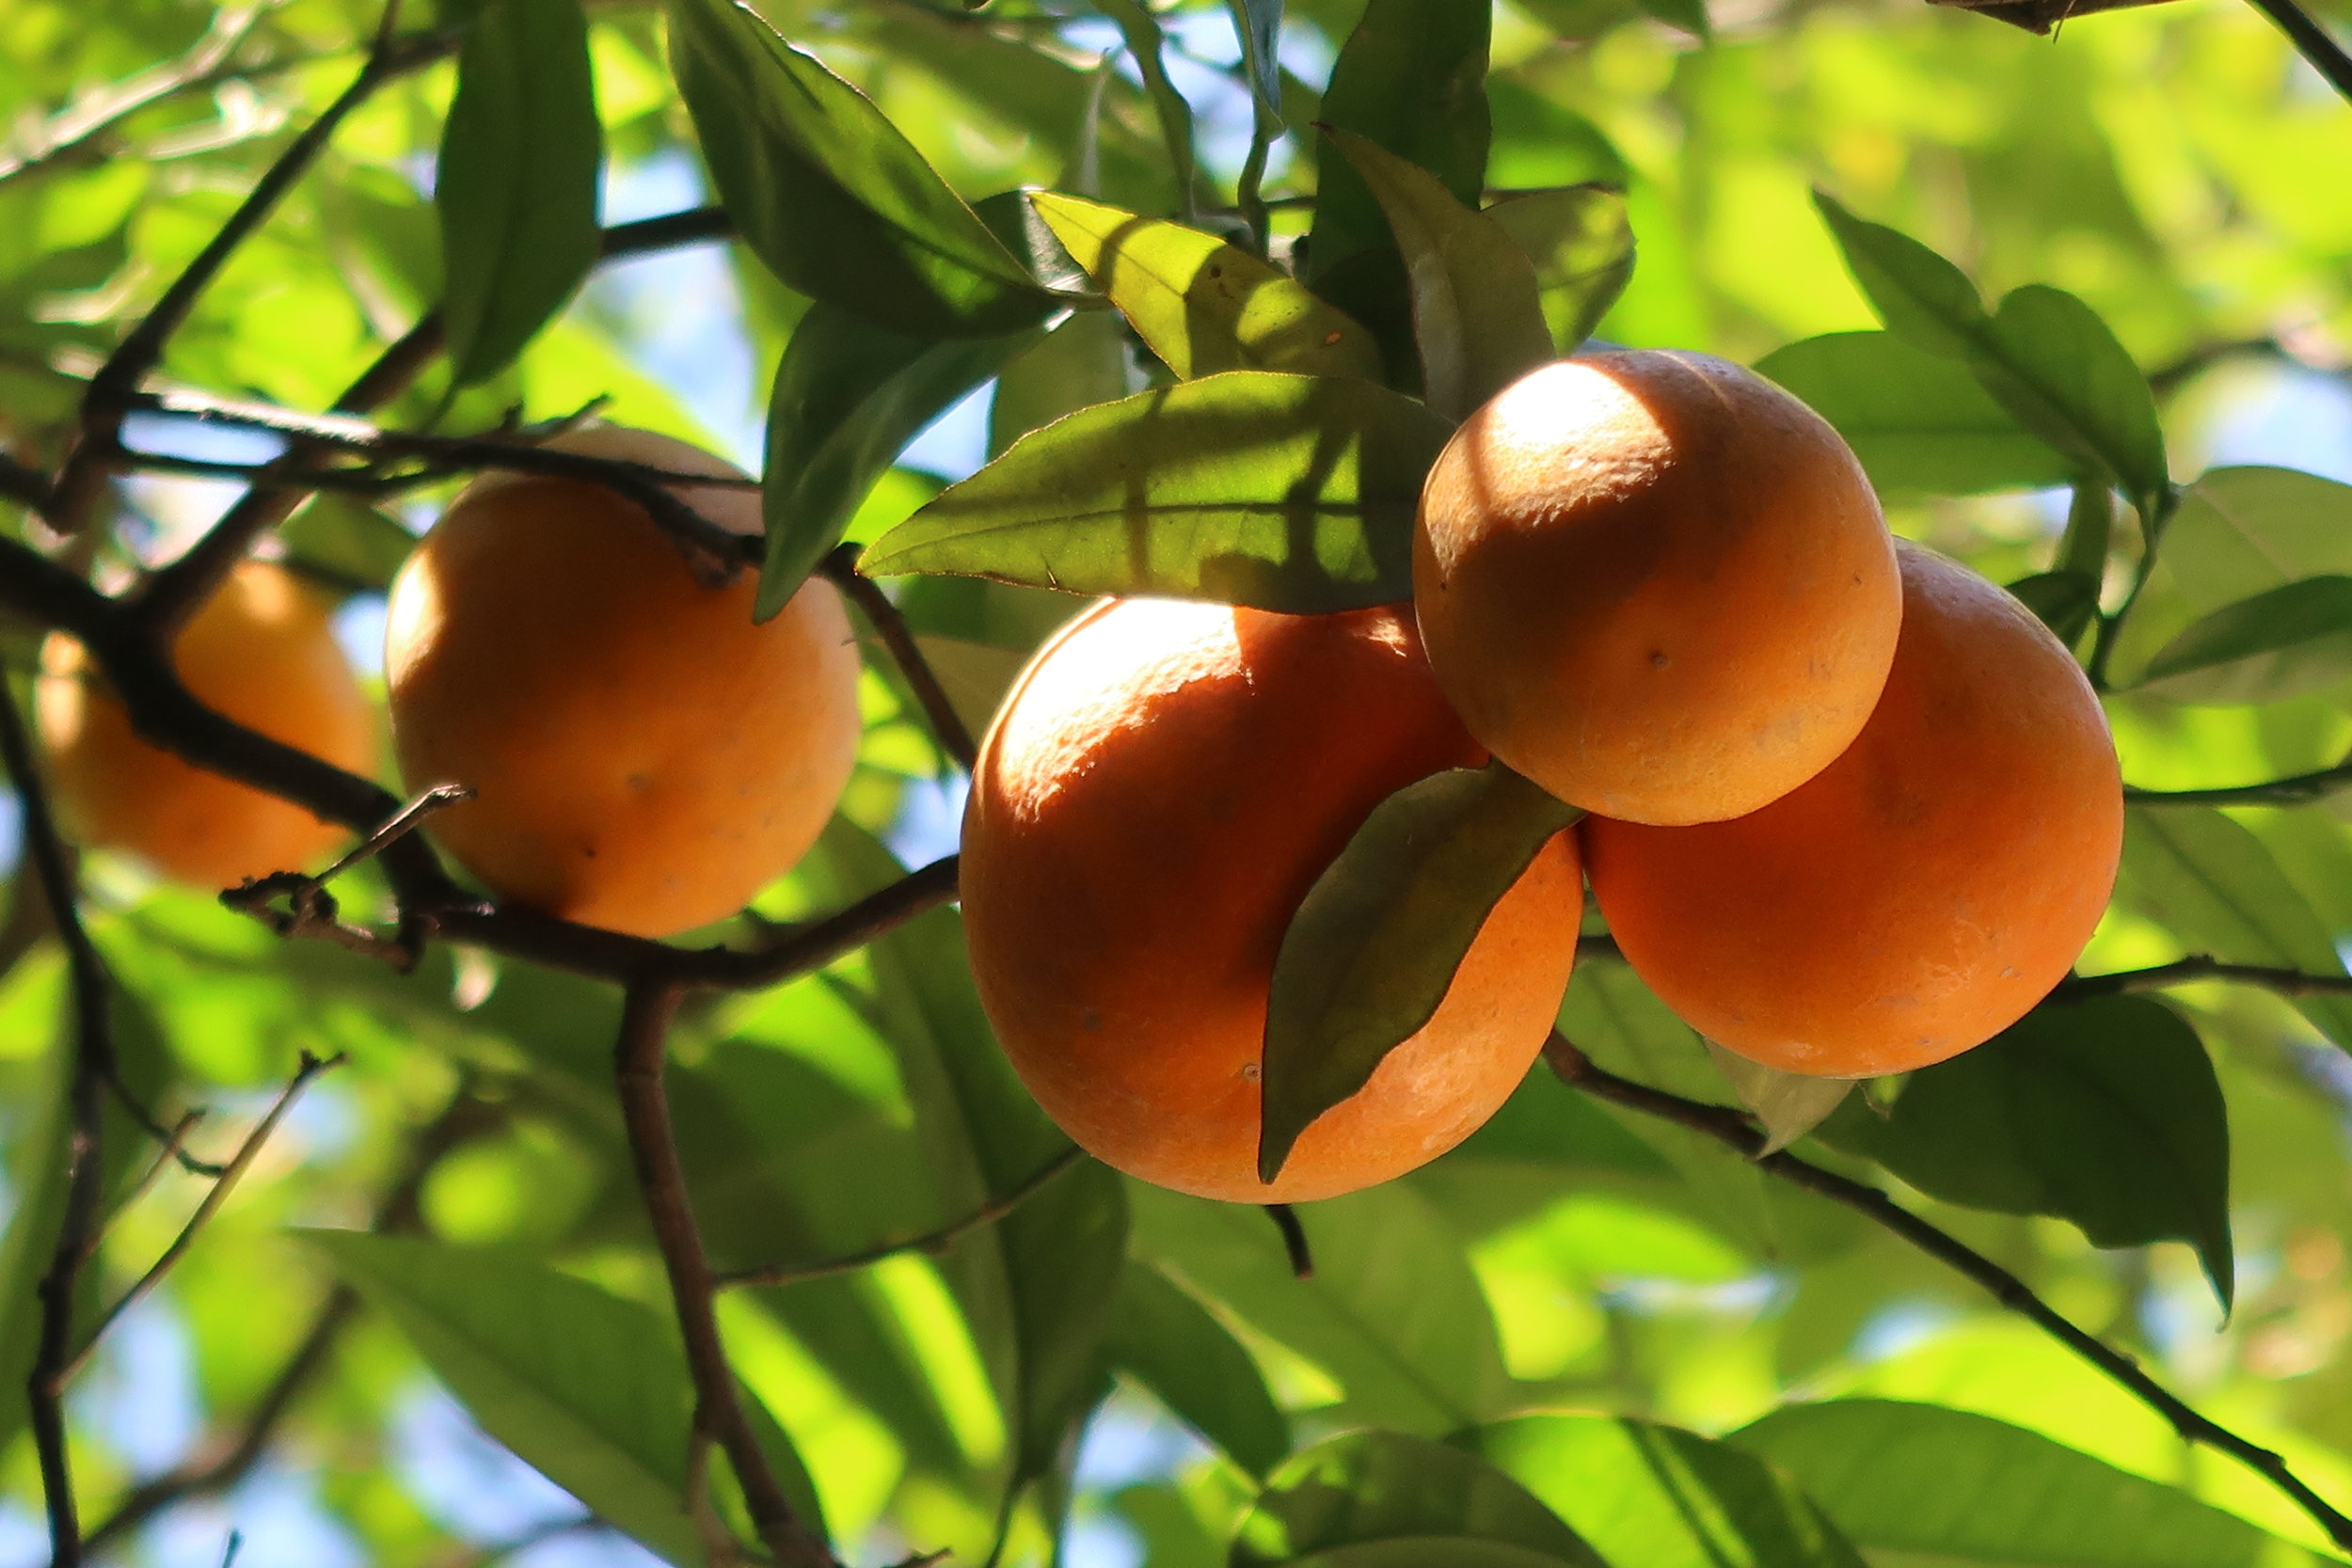 A close up of ripe oranges hanging from their tree branches.